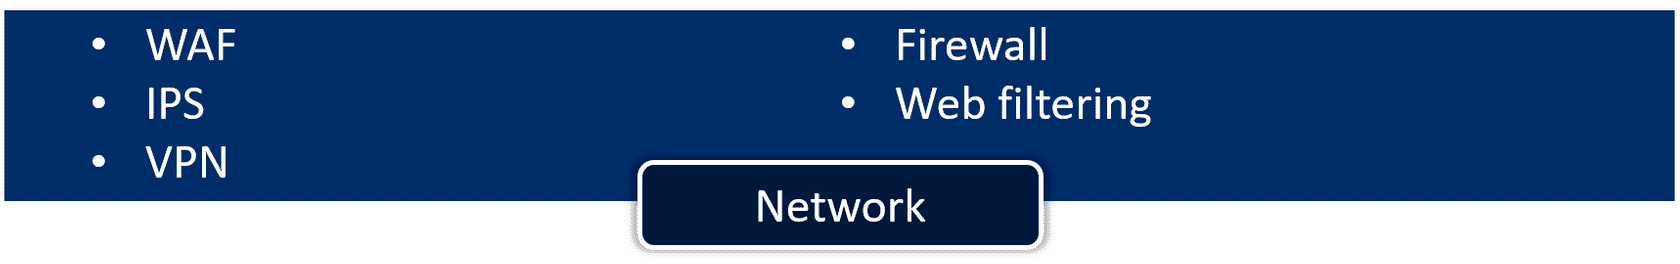 For example, IDS, IPS, application control and web filtering. The use of a firewall is always part of both platforms recommended best practices.